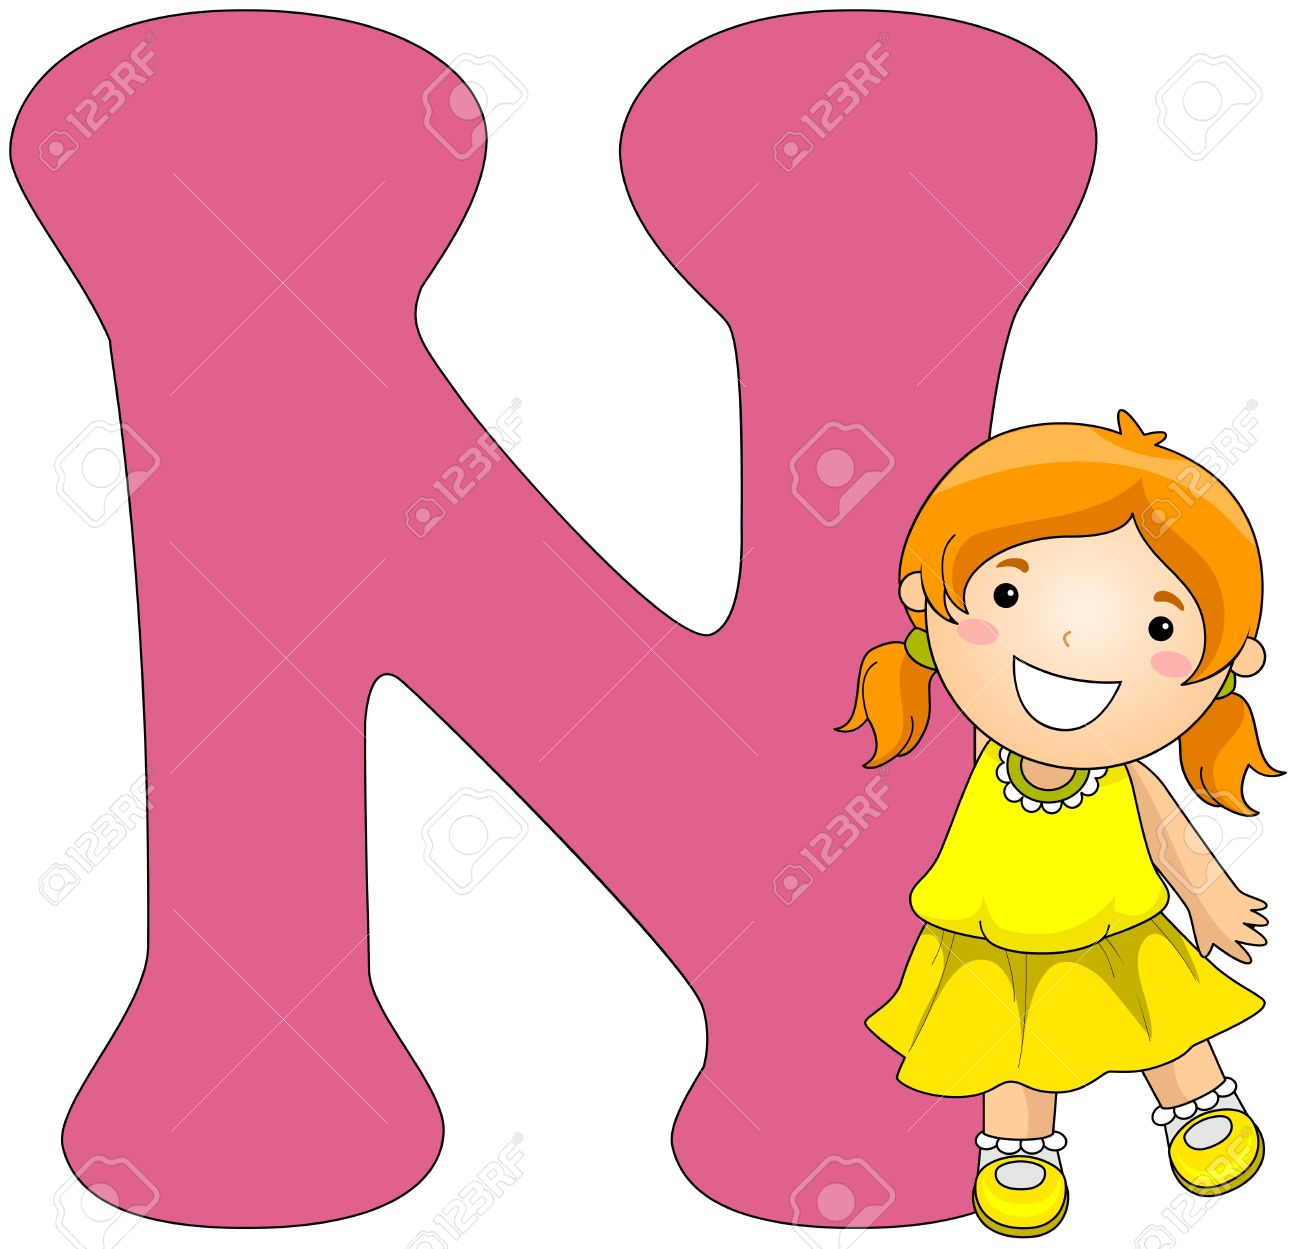 Letter n clipart 2 » Clipart Station.